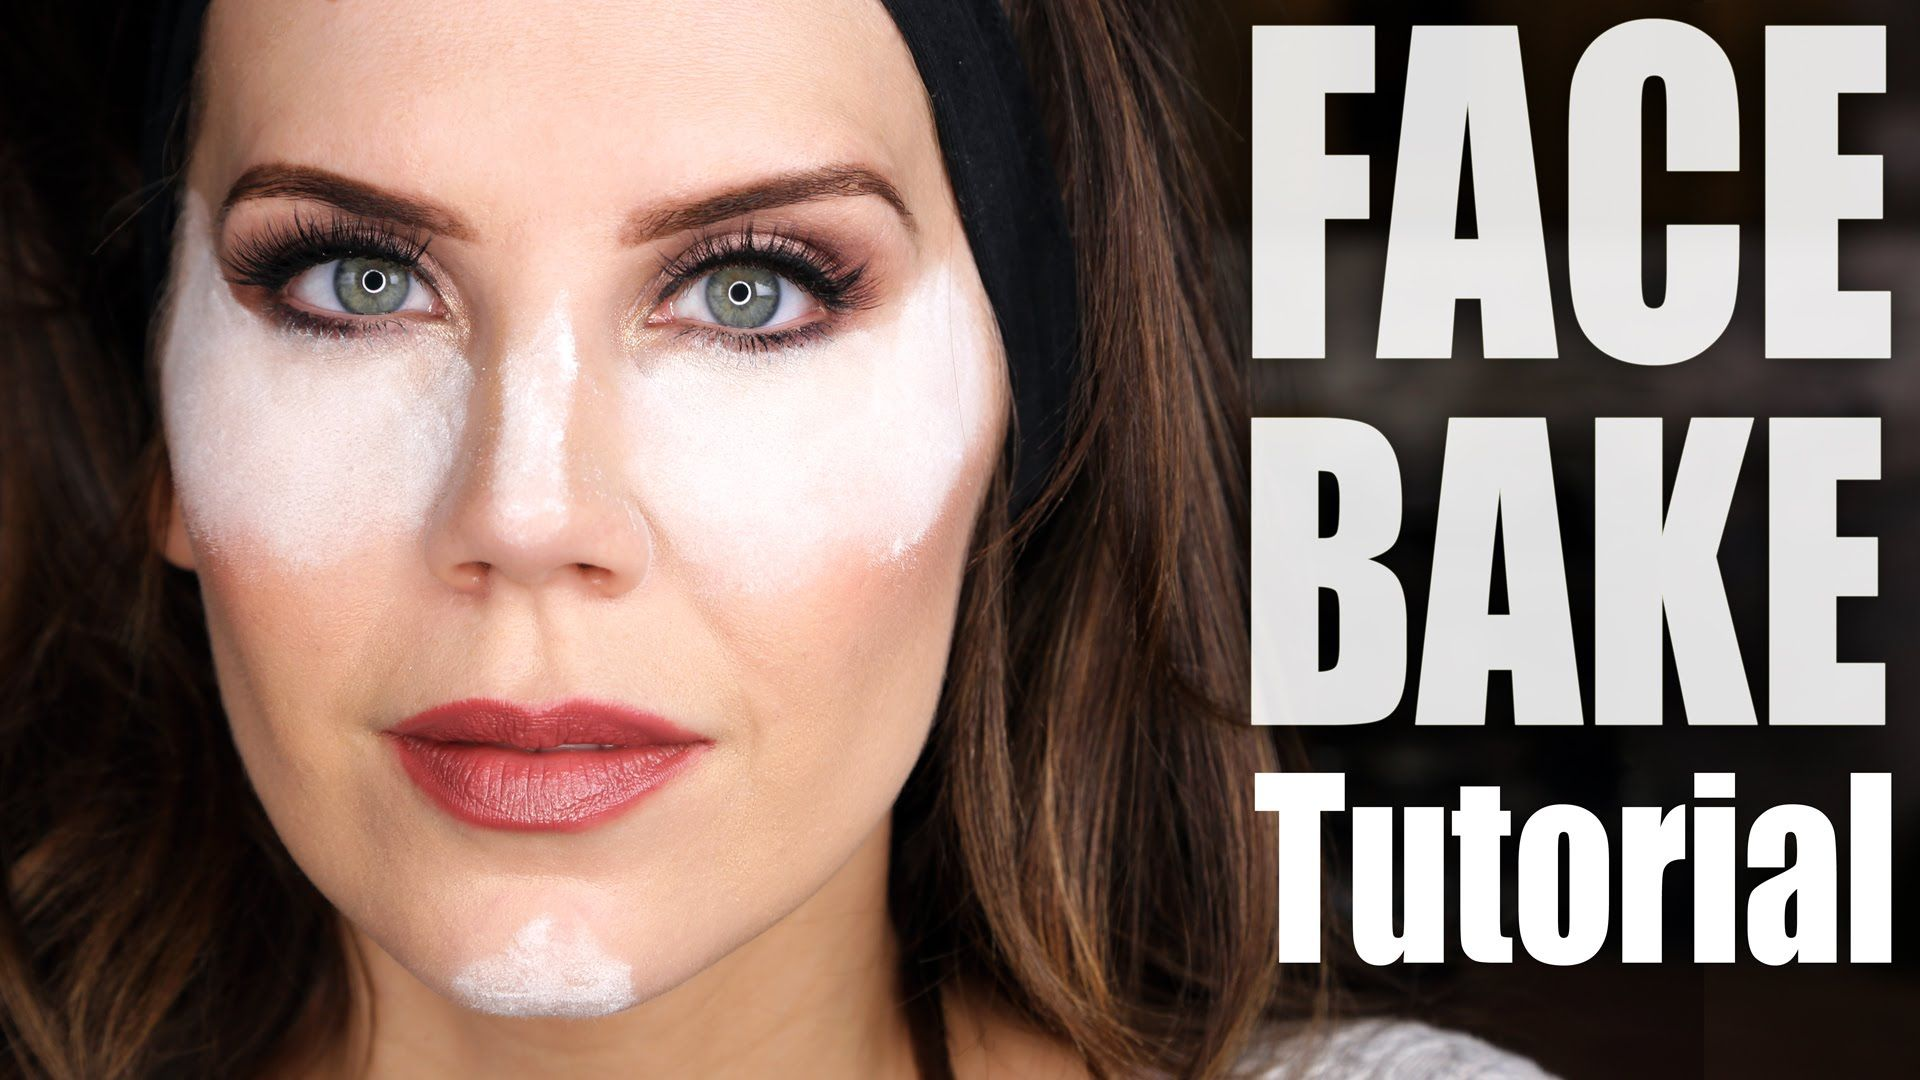 Today I teach you how to Easily Bake your Makeup and make your makeup look flawless! Please comment what other techniques you'd like to see ... and please cl...